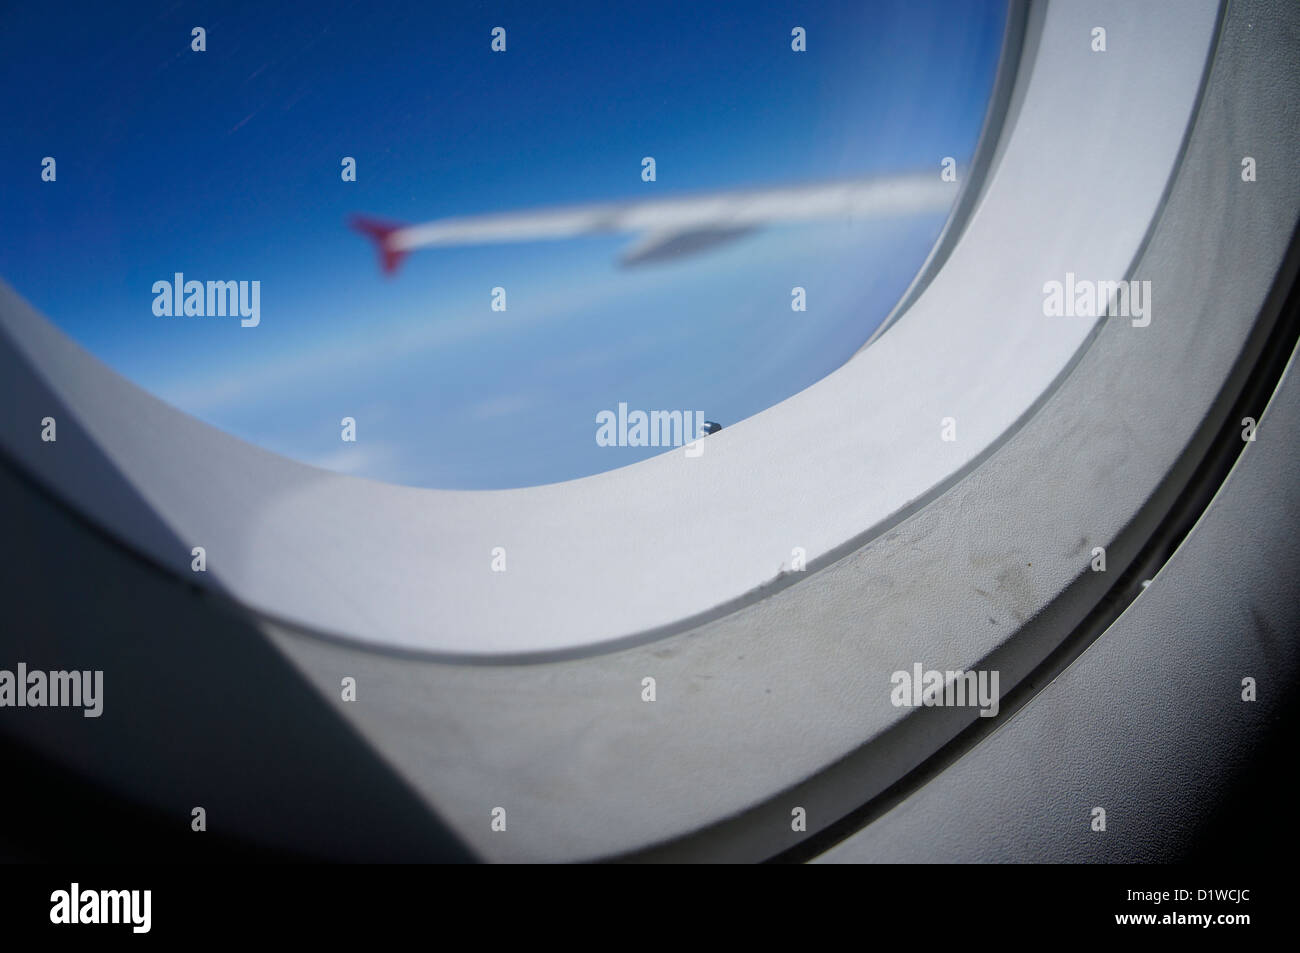 view of airplane window - Stock Image